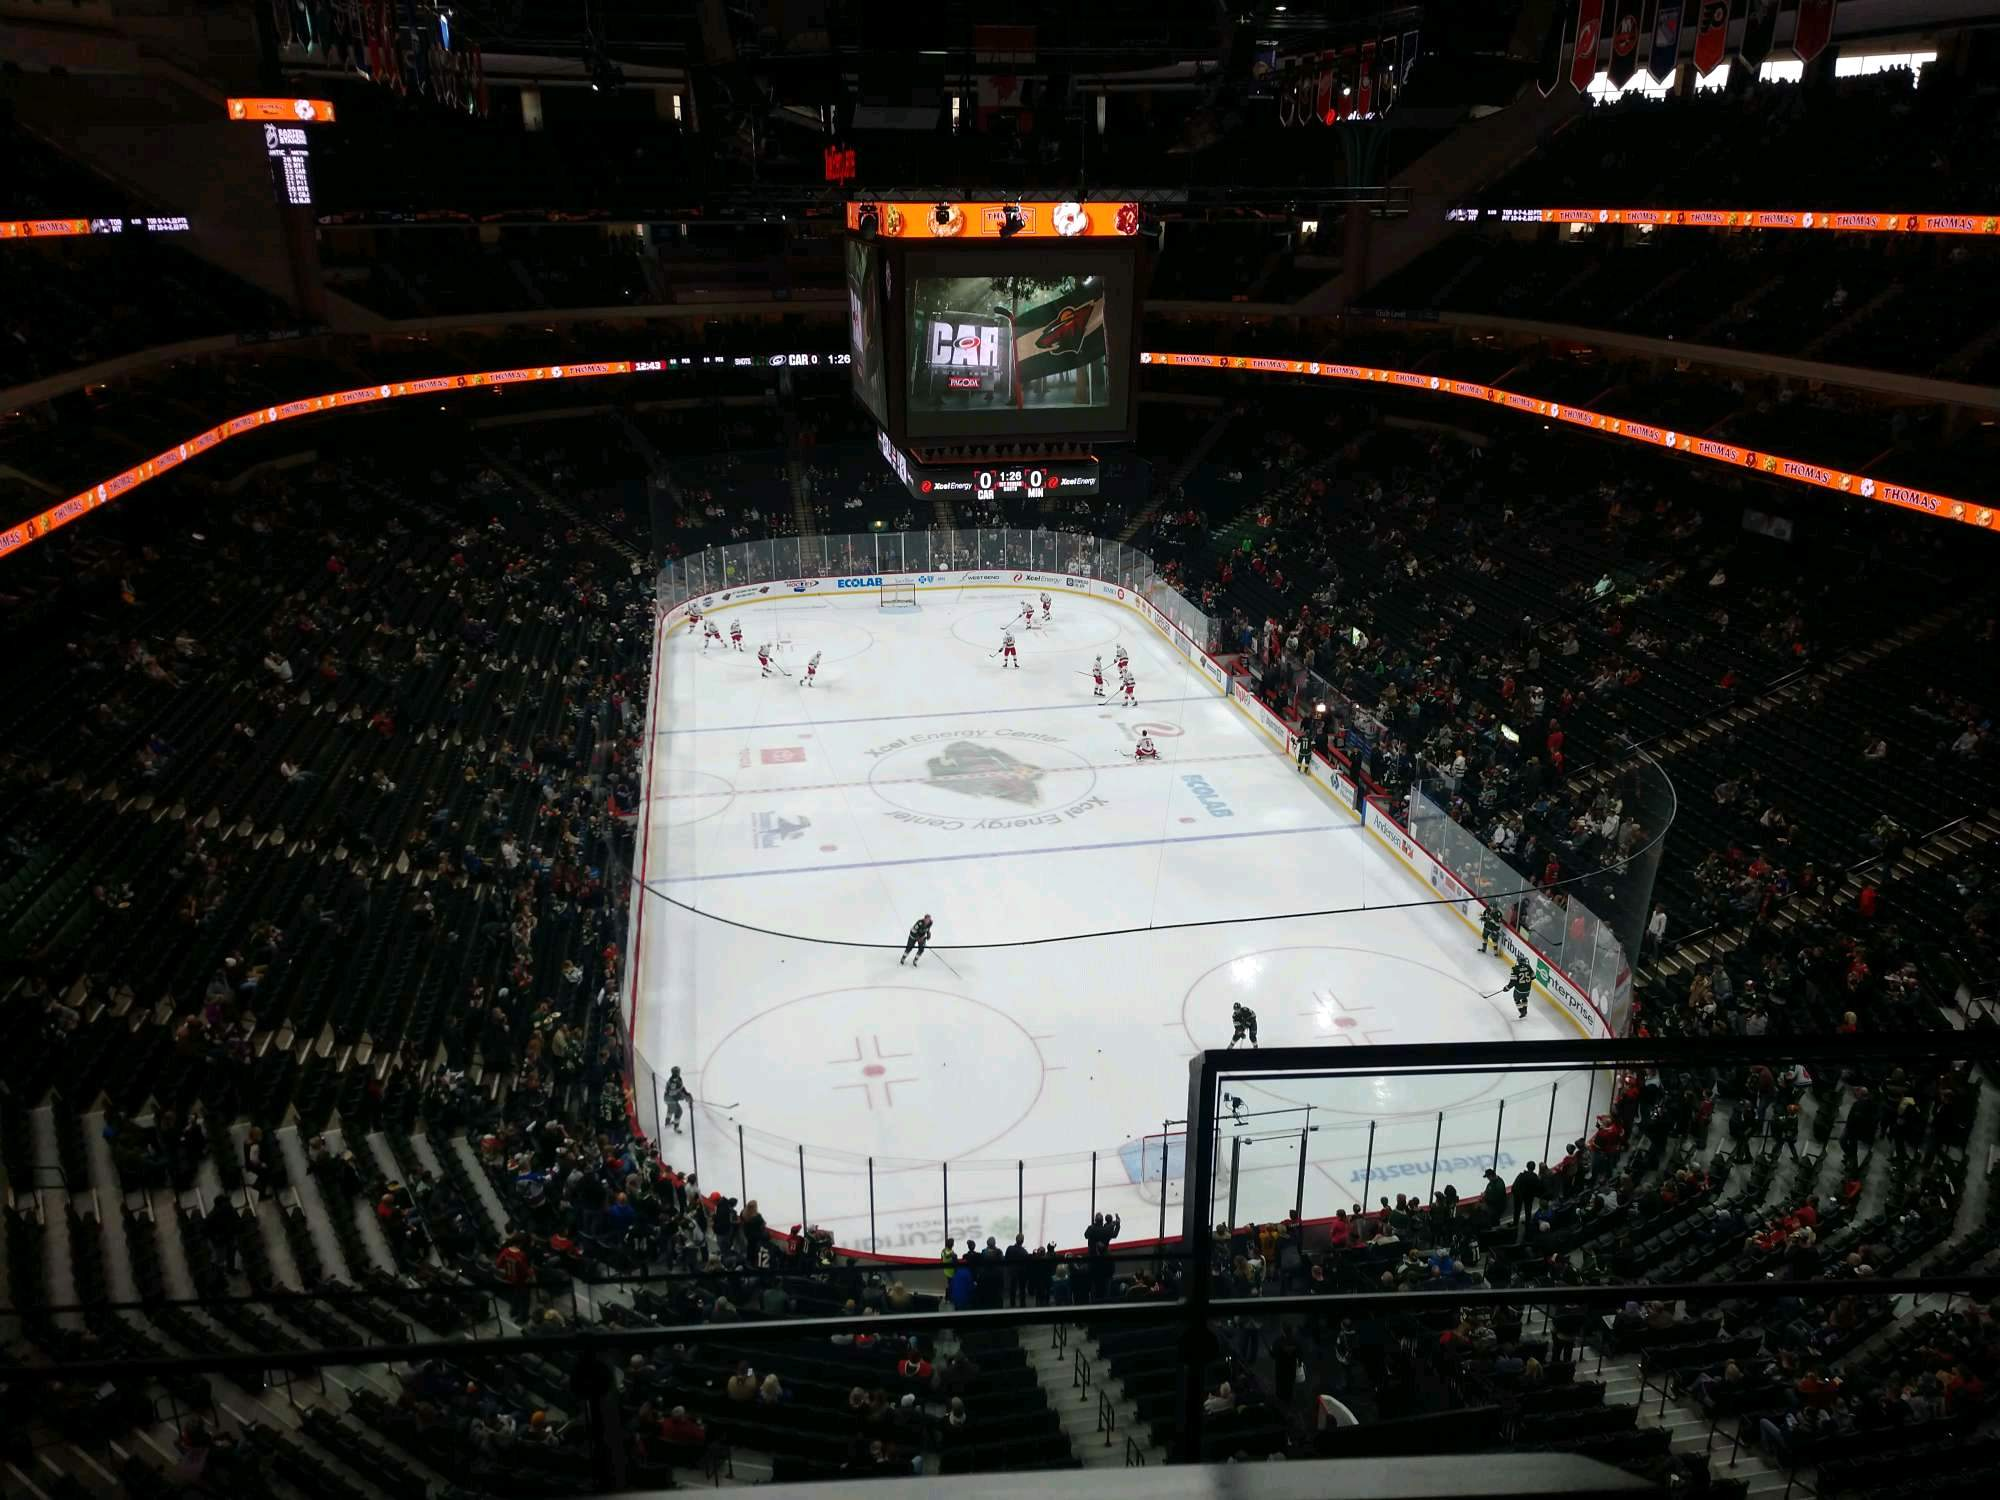 Xcel Energy Center Section 228 Row 2 Seat 1